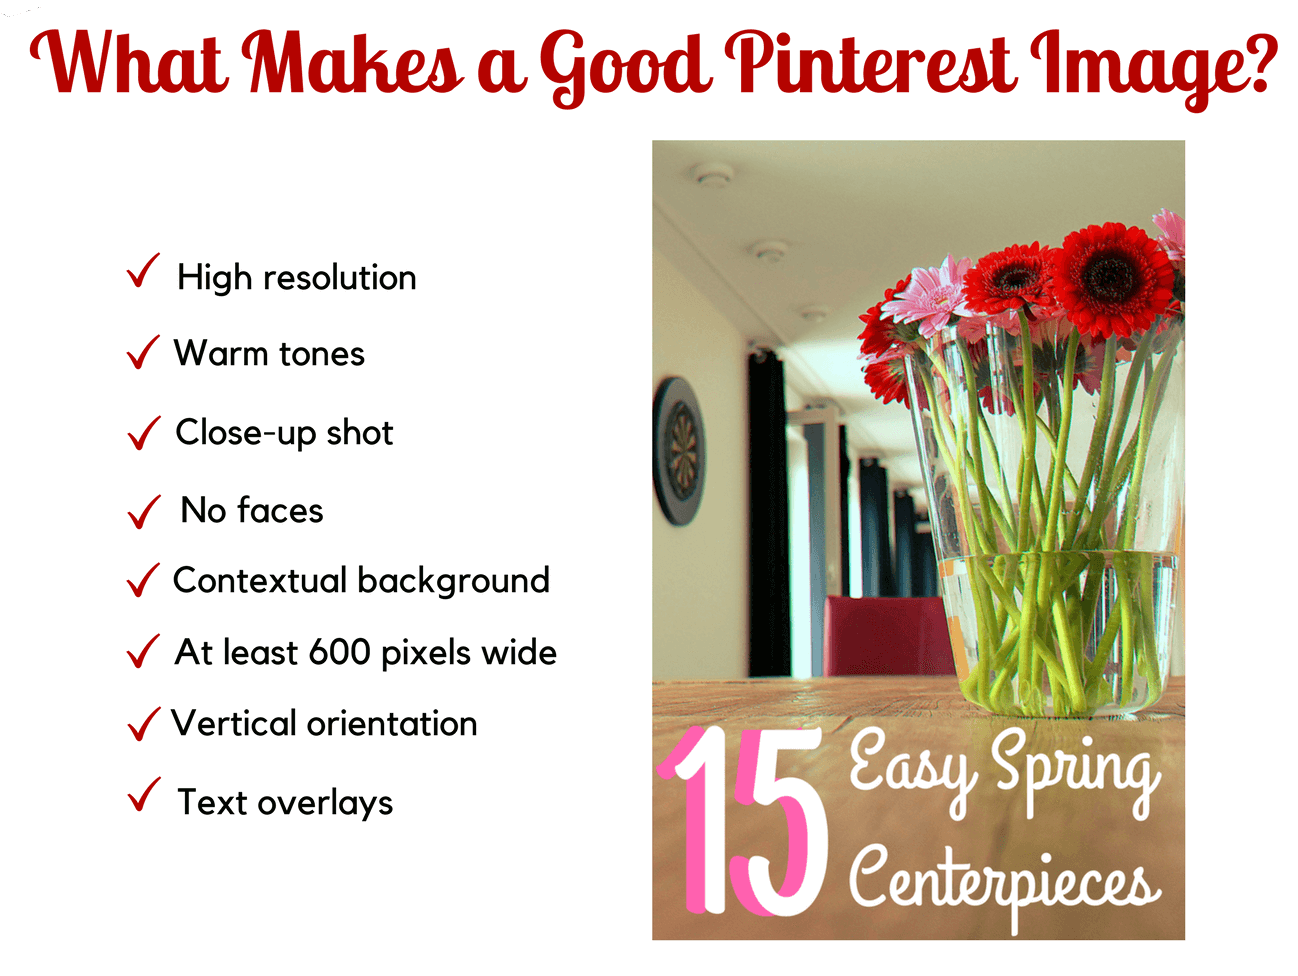 Graphic that details what makes a good Pinterest image